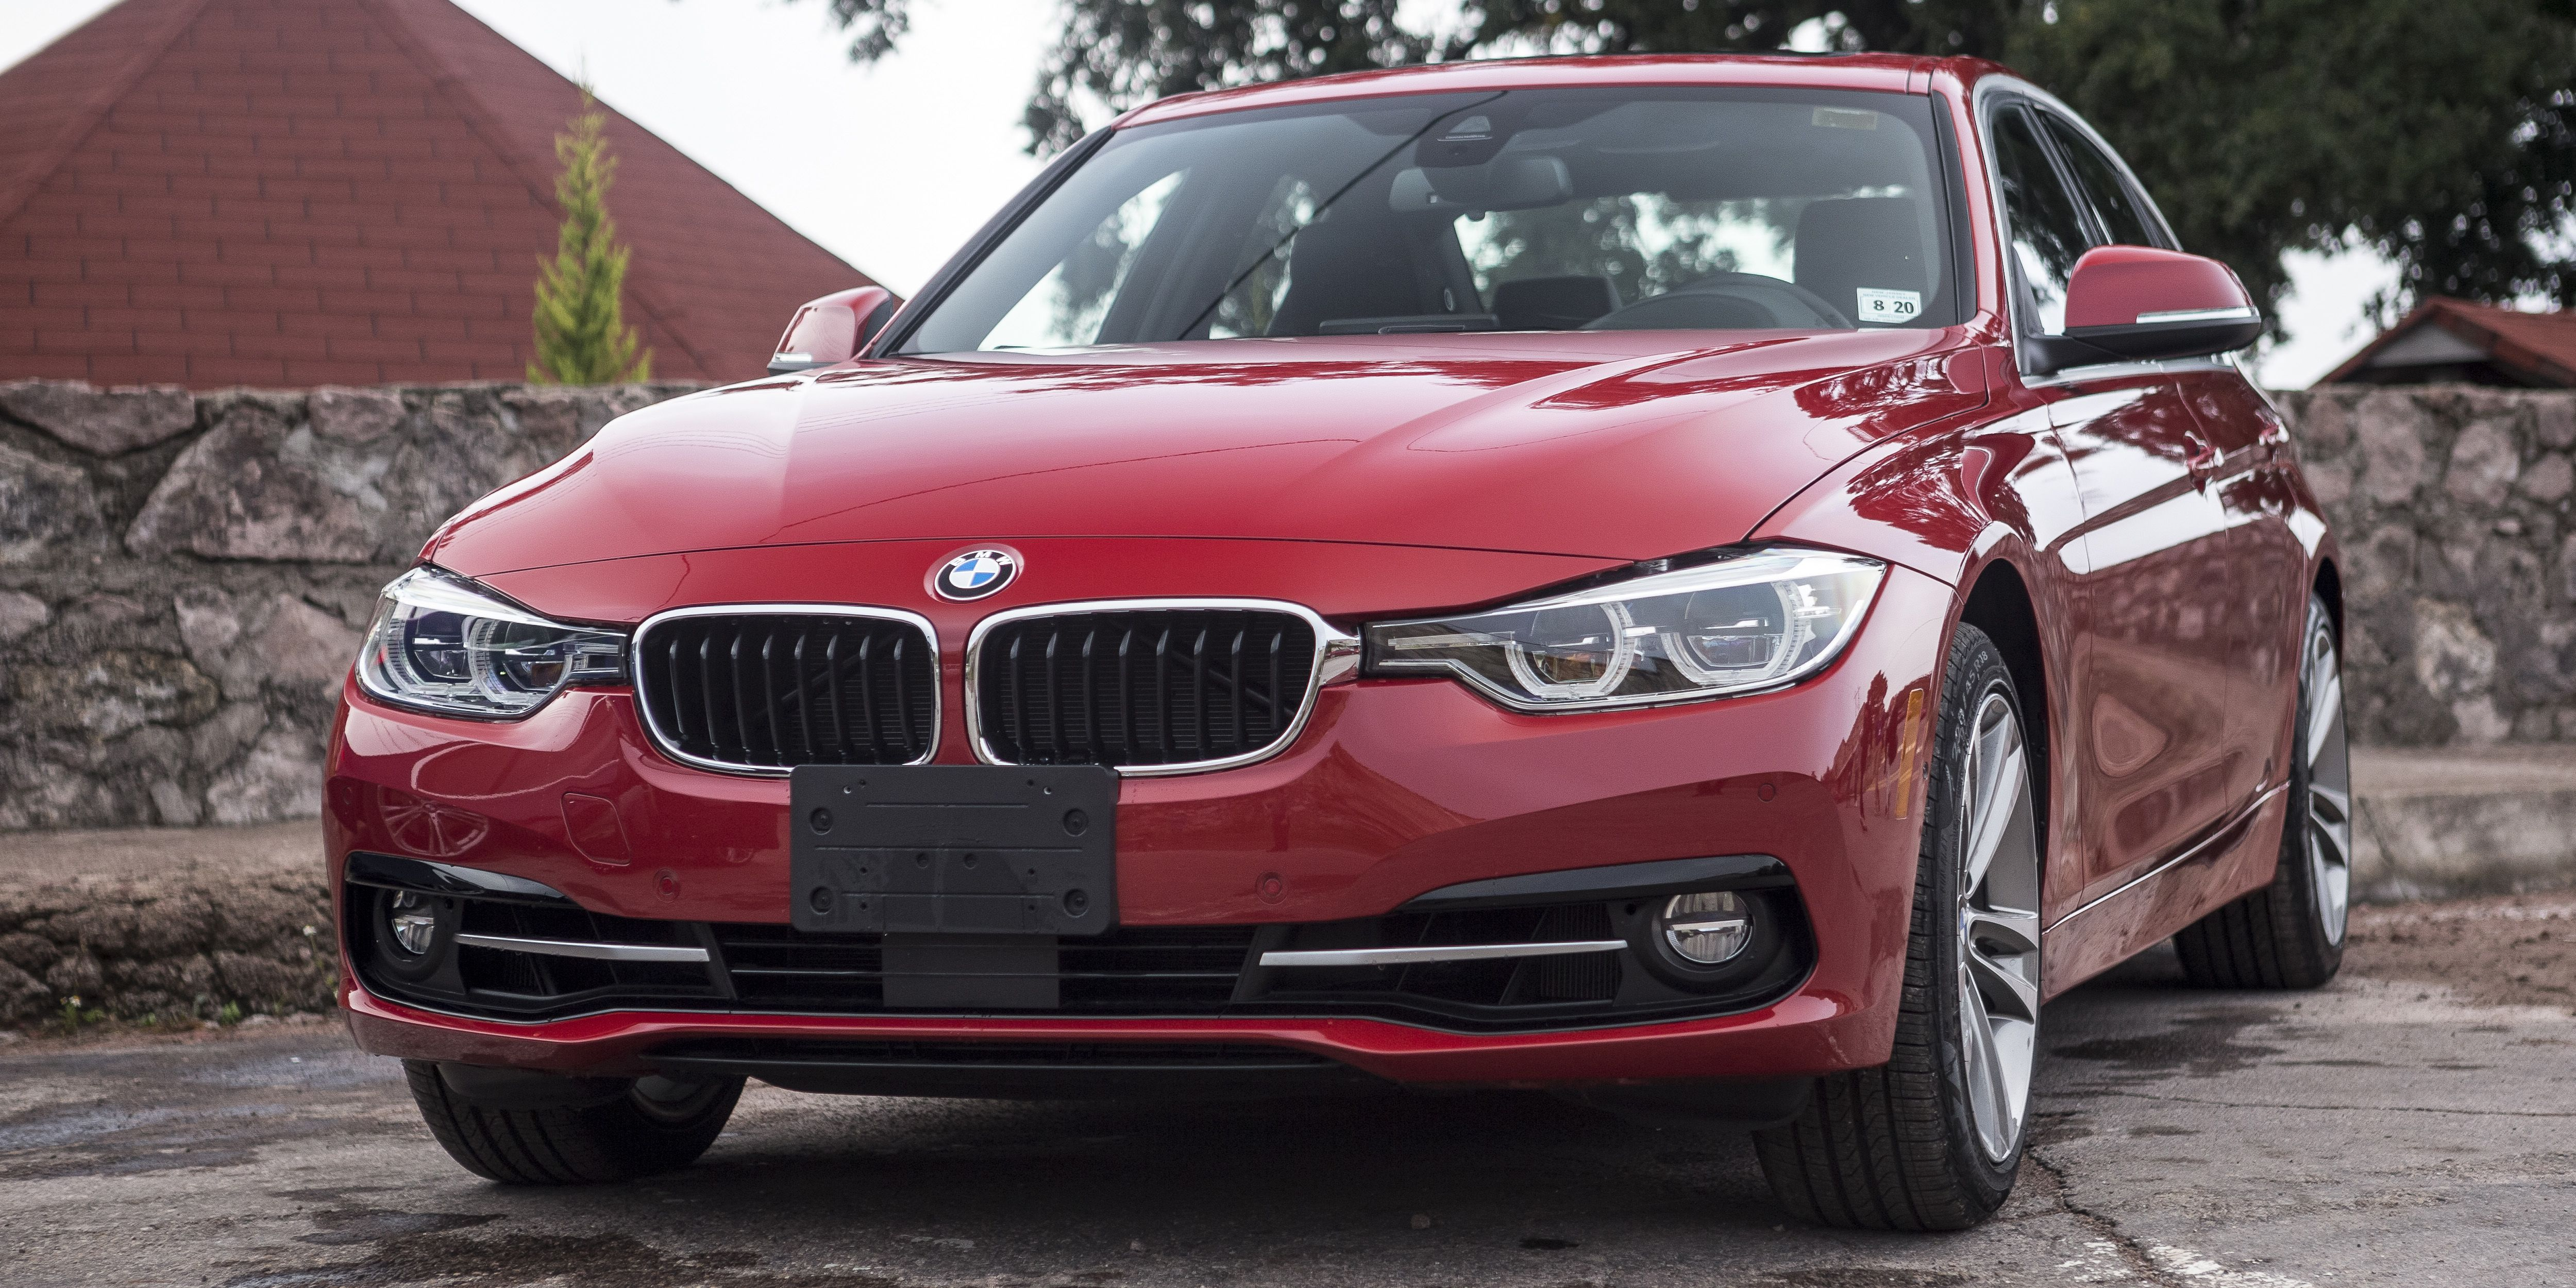 """<p><del data-verified=""""redactor"""" data-redactor-tag=""""del""""></del>Amazingly, a rear-wheel drivesix-cylinder BMW 3-Series can do 32 mpg on the highway, if you don't bury your foot too often. That's amazing for <a href=""""http://www.roadandtrack.com/car-culture/a31788/comparison-2016-bmw-340i-vs-2017-jaguar-xe/"""" target=""""_blank"""" data-tracking-id=""""recirc-text-link"""">a 320-hp car</a> that's a hoot on a twisty backroad.</p>"""